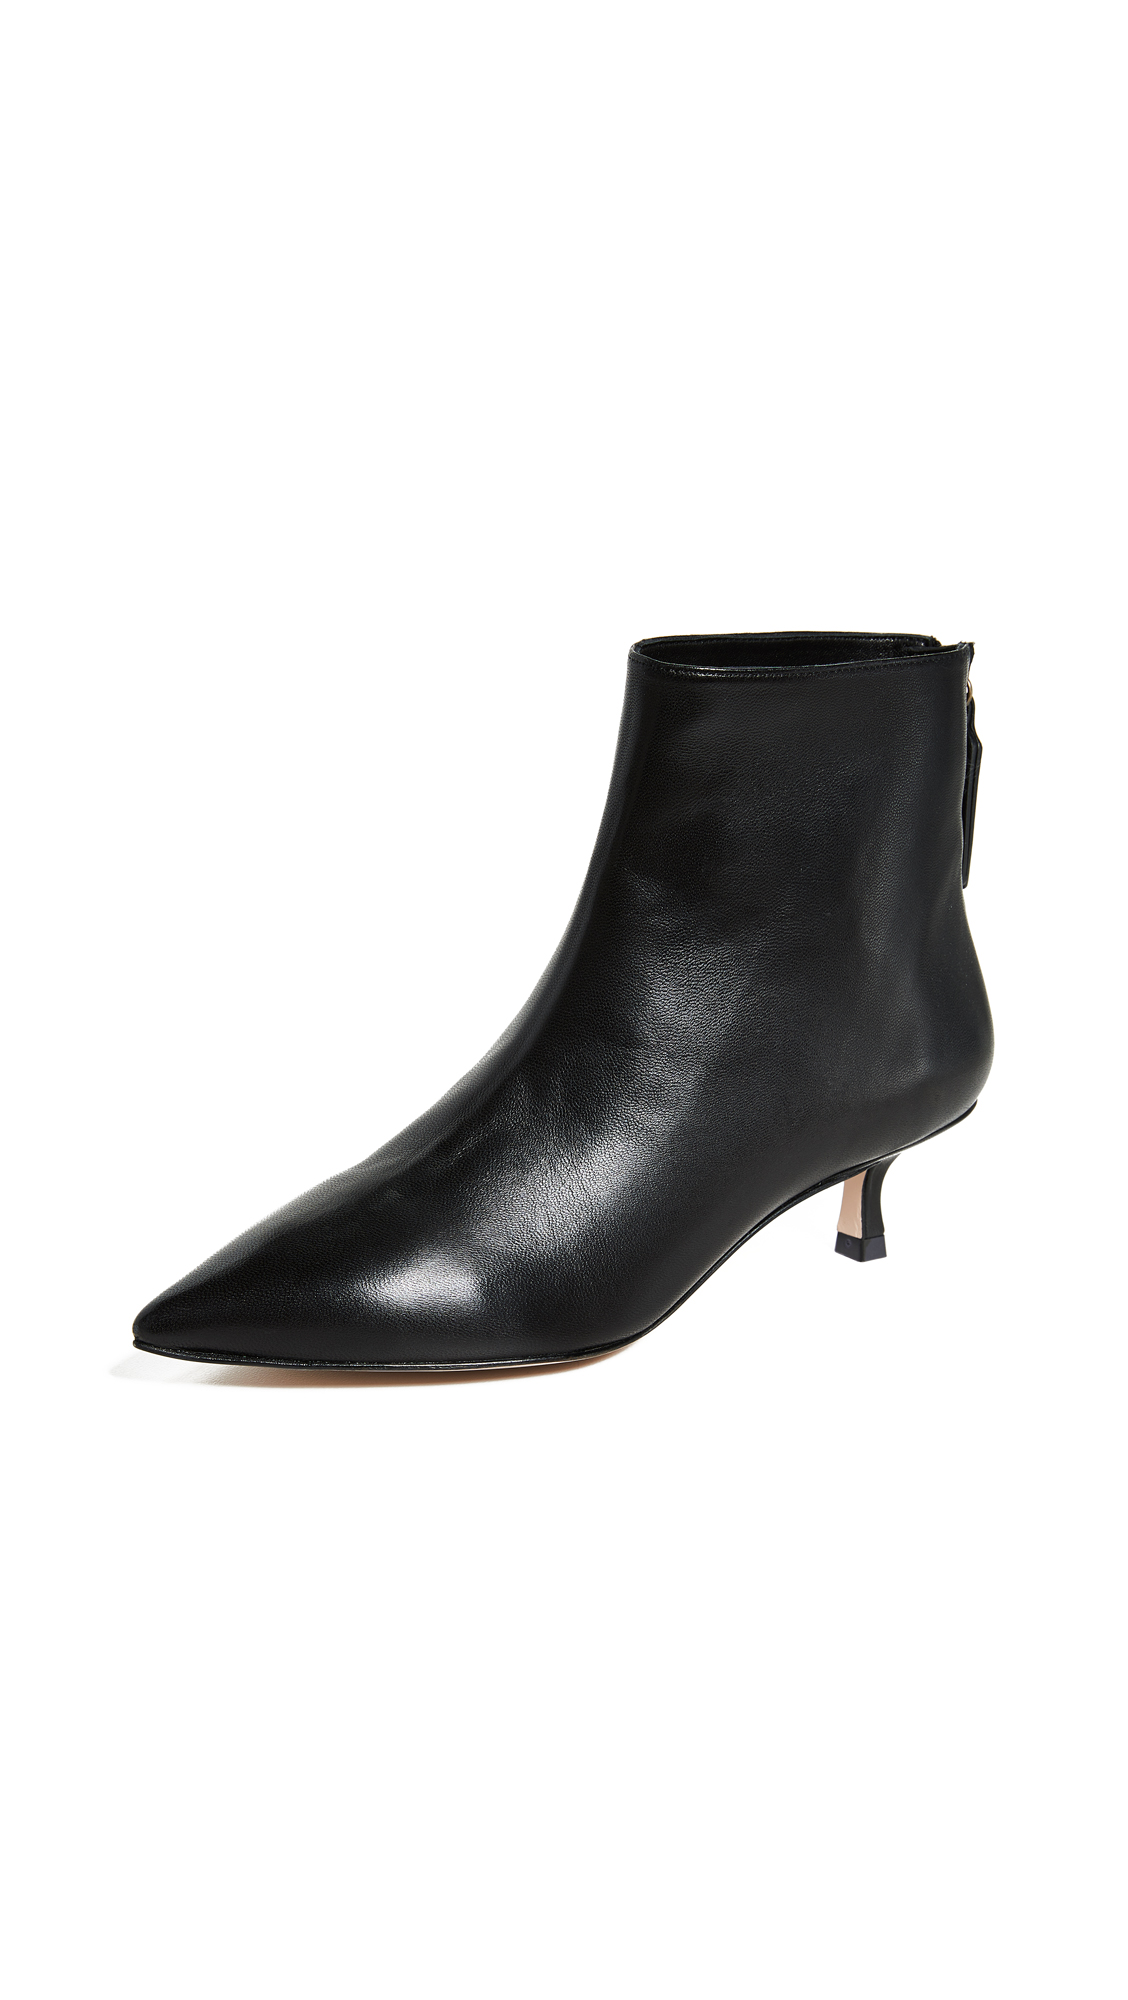 Stuart Weitzman Juniper 45mm Booties - Black